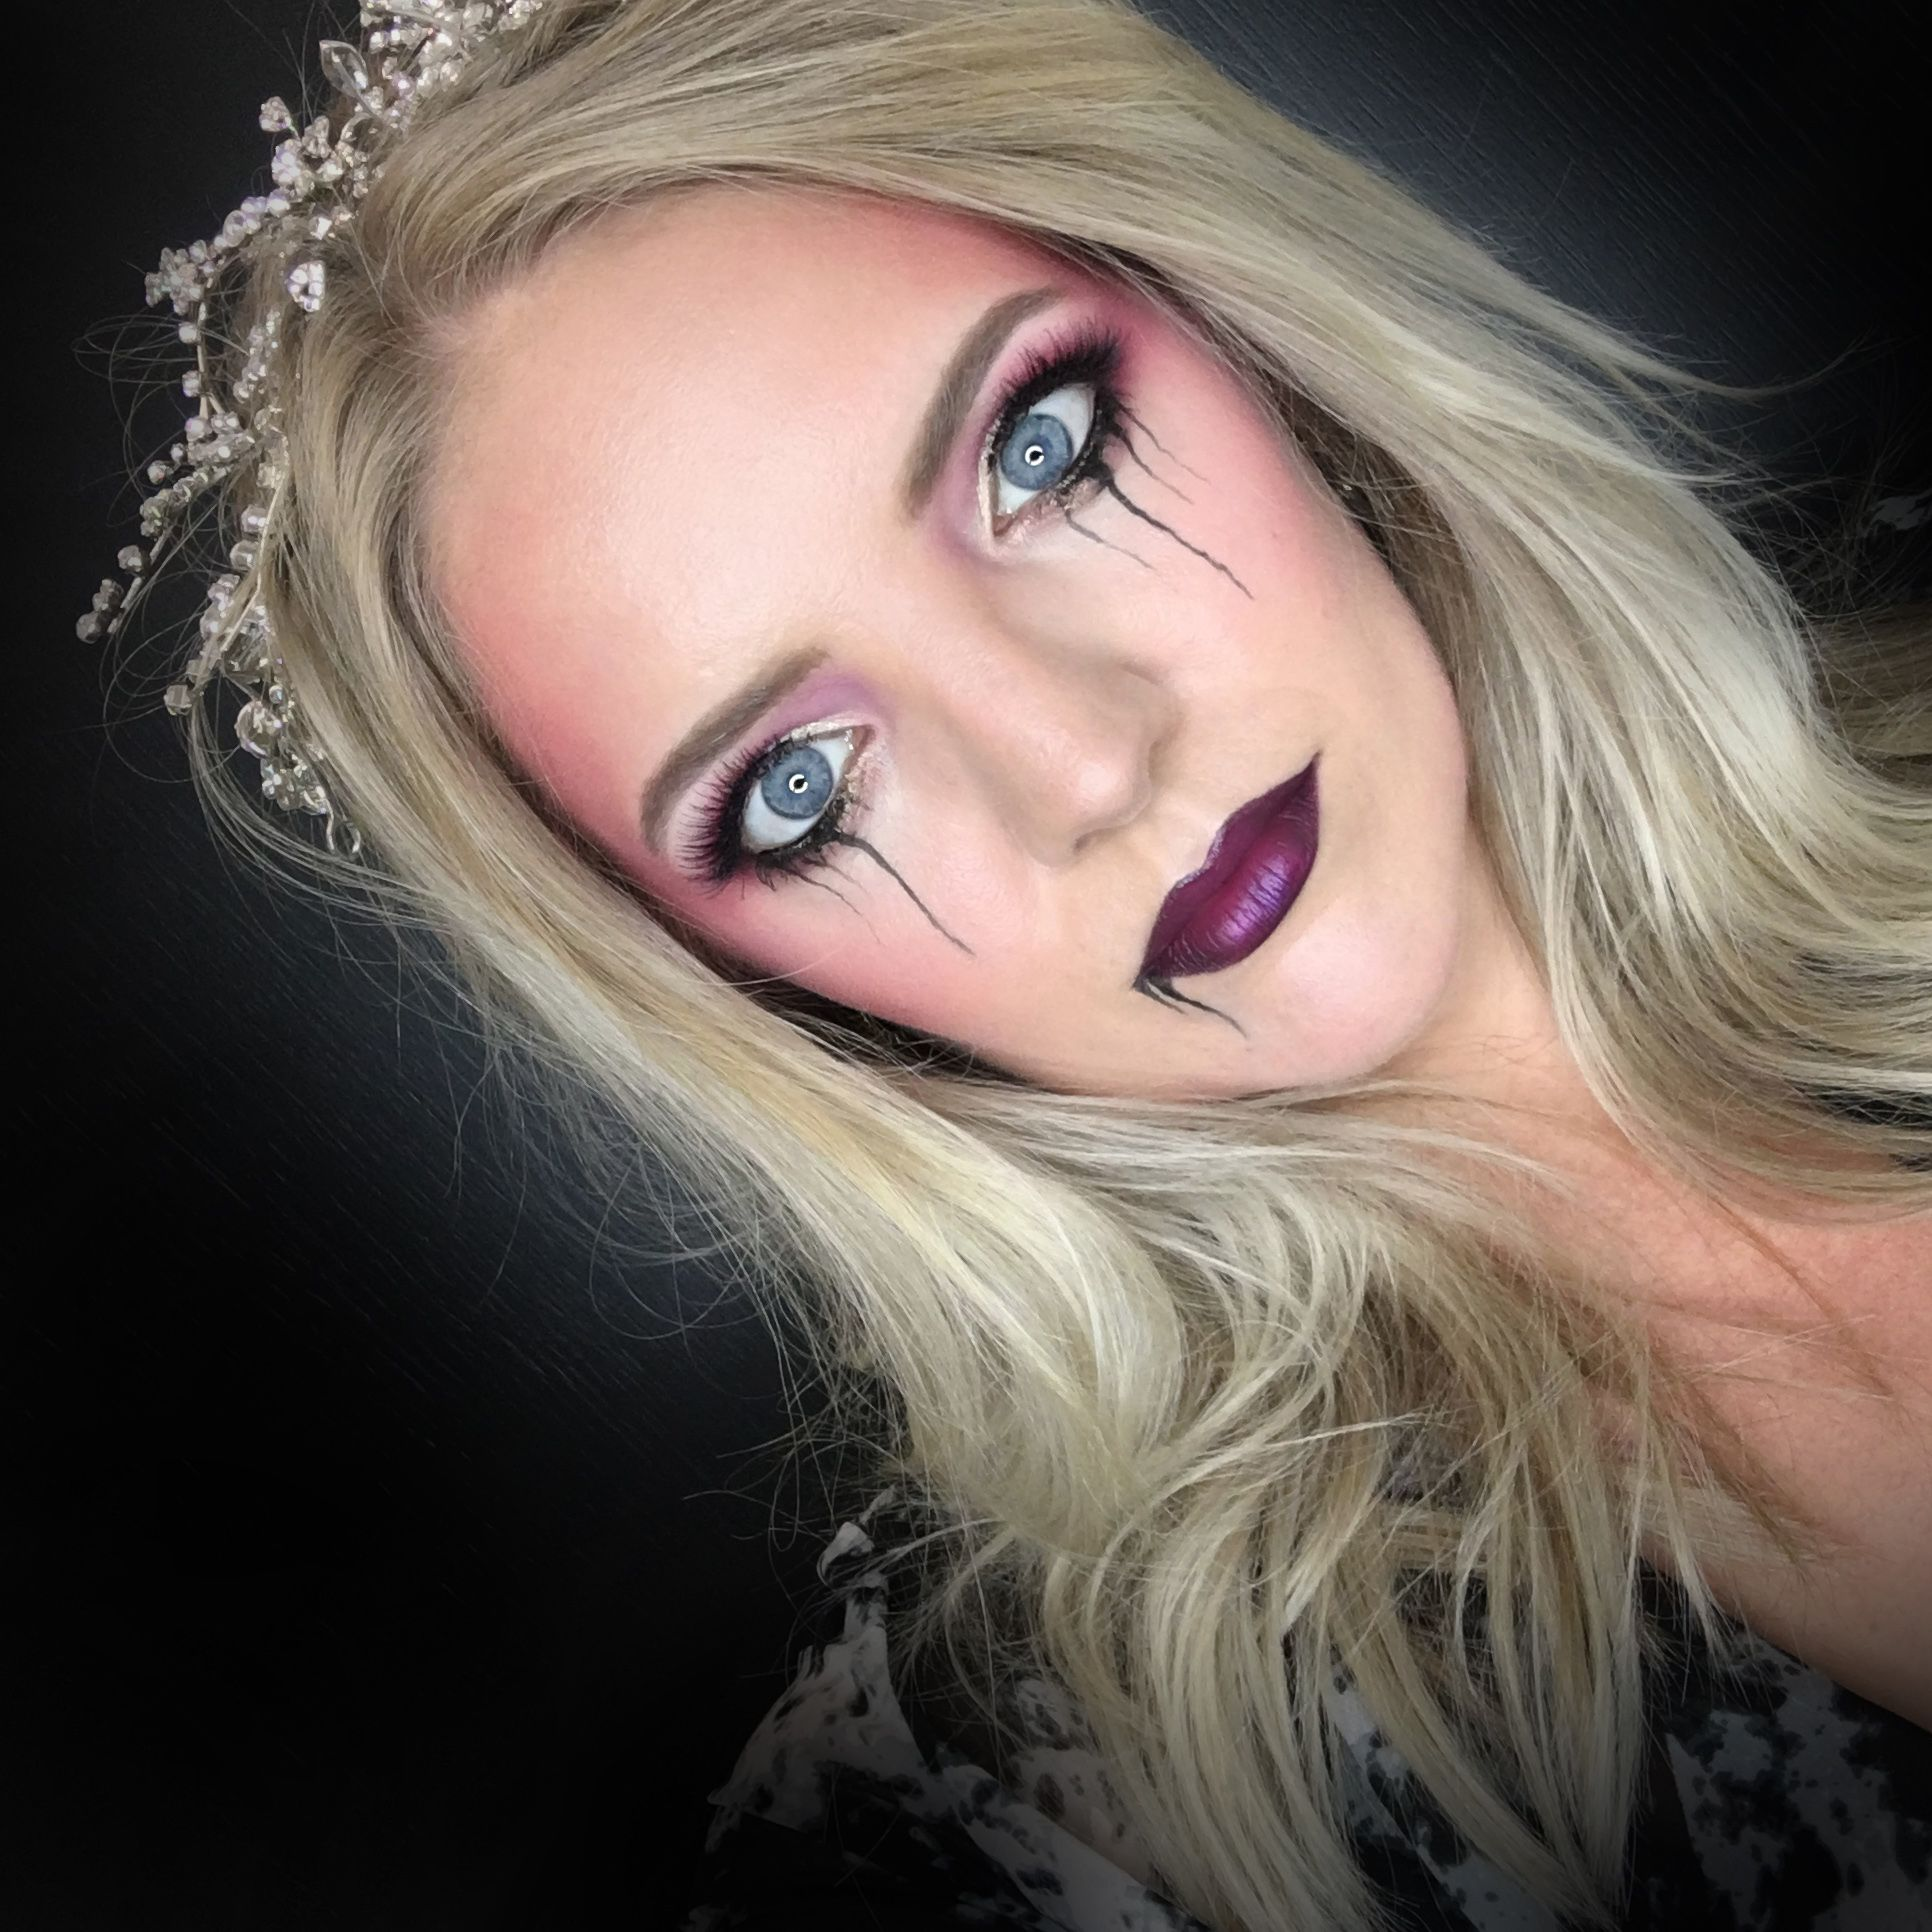 Halloween makeup, princess, scary, beauty pageant